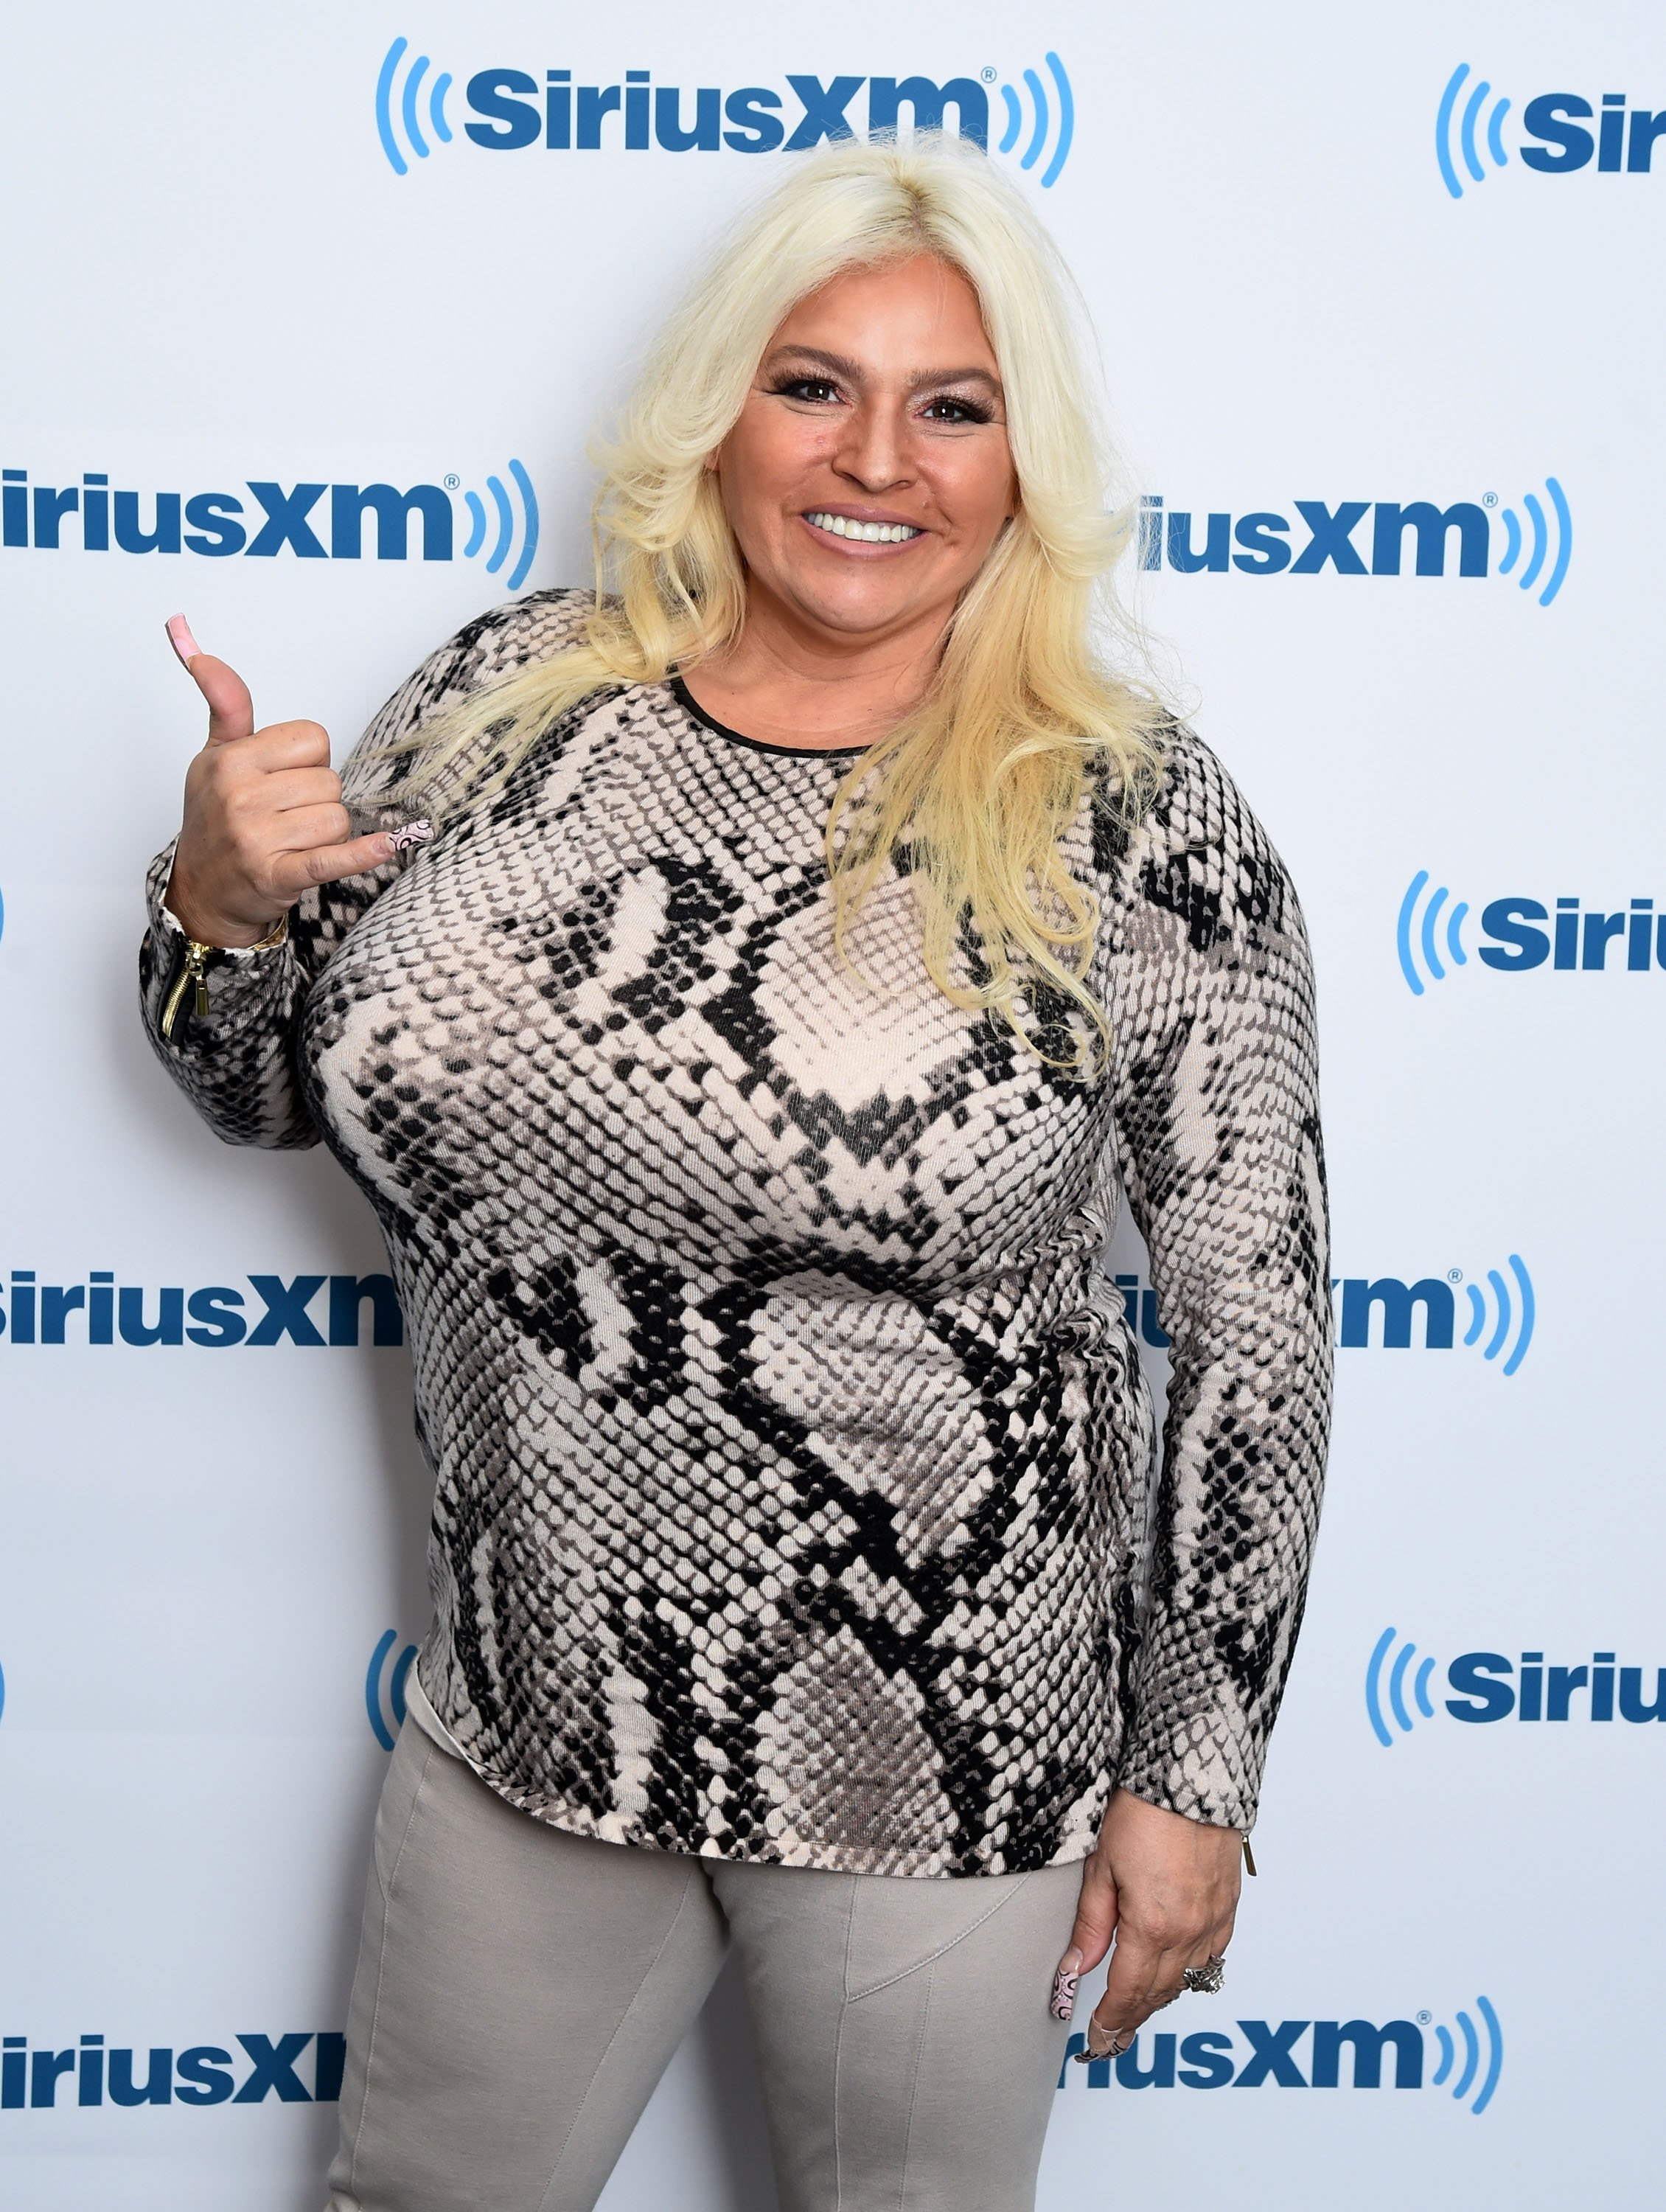 Beth Chapman at the SiriusXM Studios on April 24, 2015 in New York City. | Photo: Getty Images